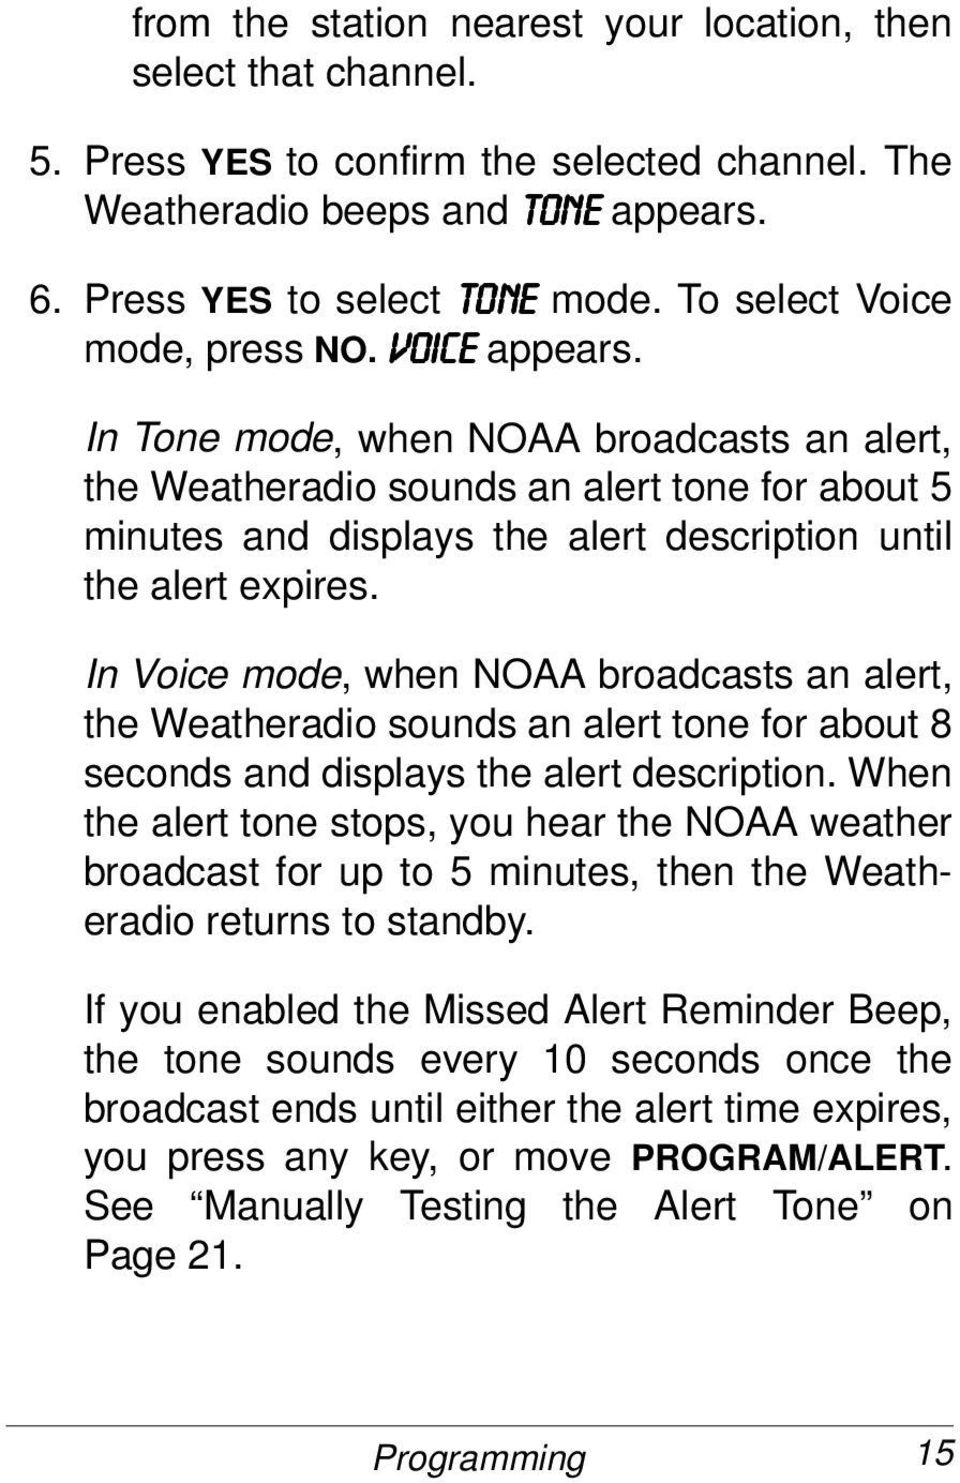 In Tone mode, when NOAA broadcasts an alert, the Weatheradio sounds an alert tone for about 5 minutes and displays the alert description until the alert expires.